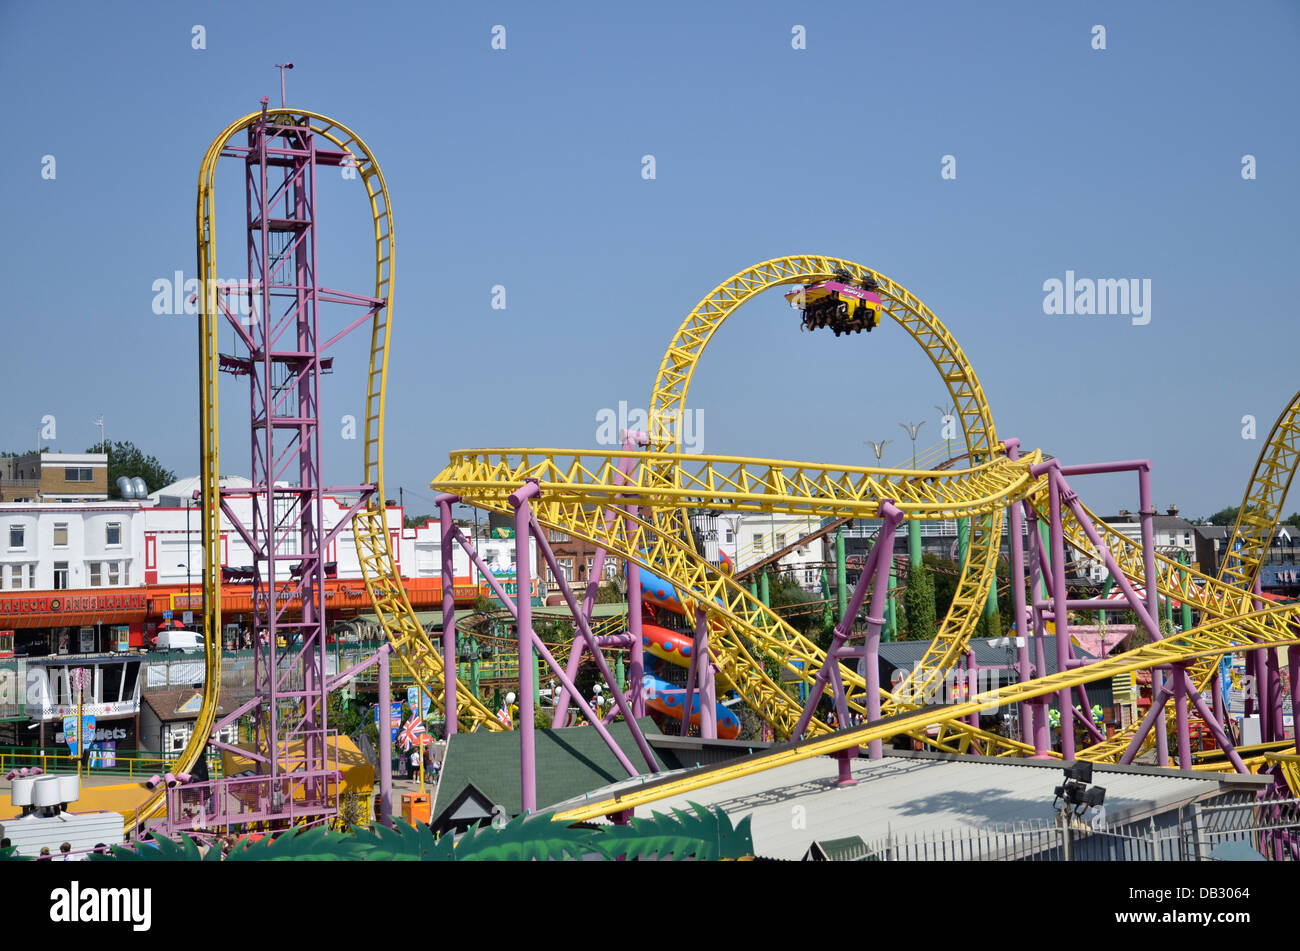 A ride at Adventure Island, Southend-on-Sea - Stock Image